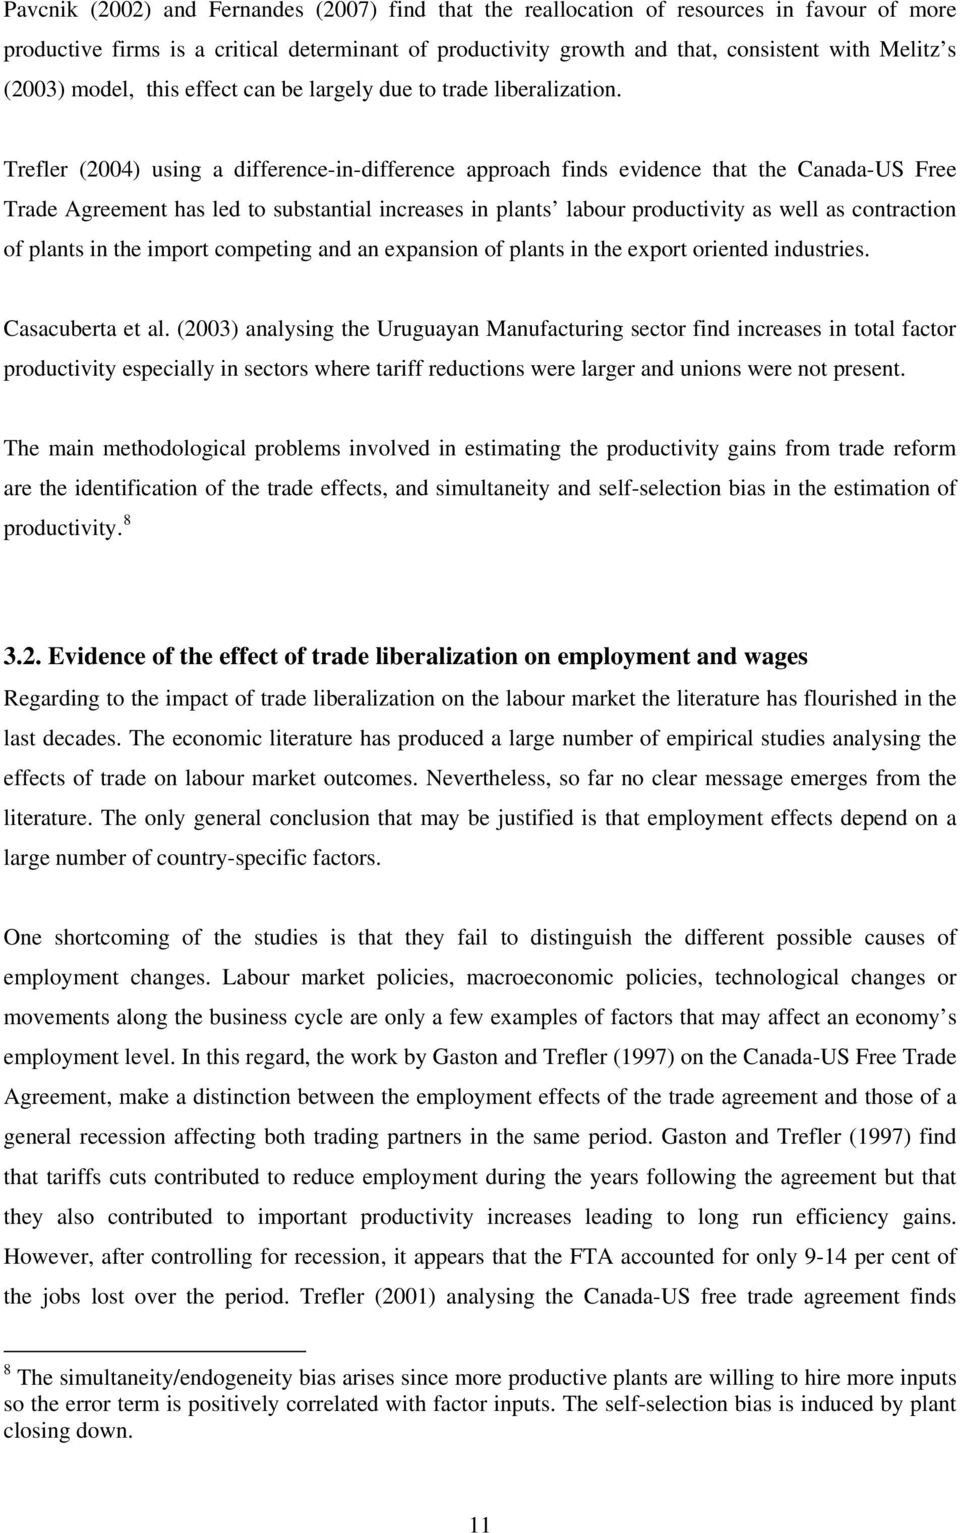 Trefler (2004) using a difference-in-difference approach finds evidence that the Canada-US Free Trade Agreement has led to substantial increases in plants labour productivity as well as contraction